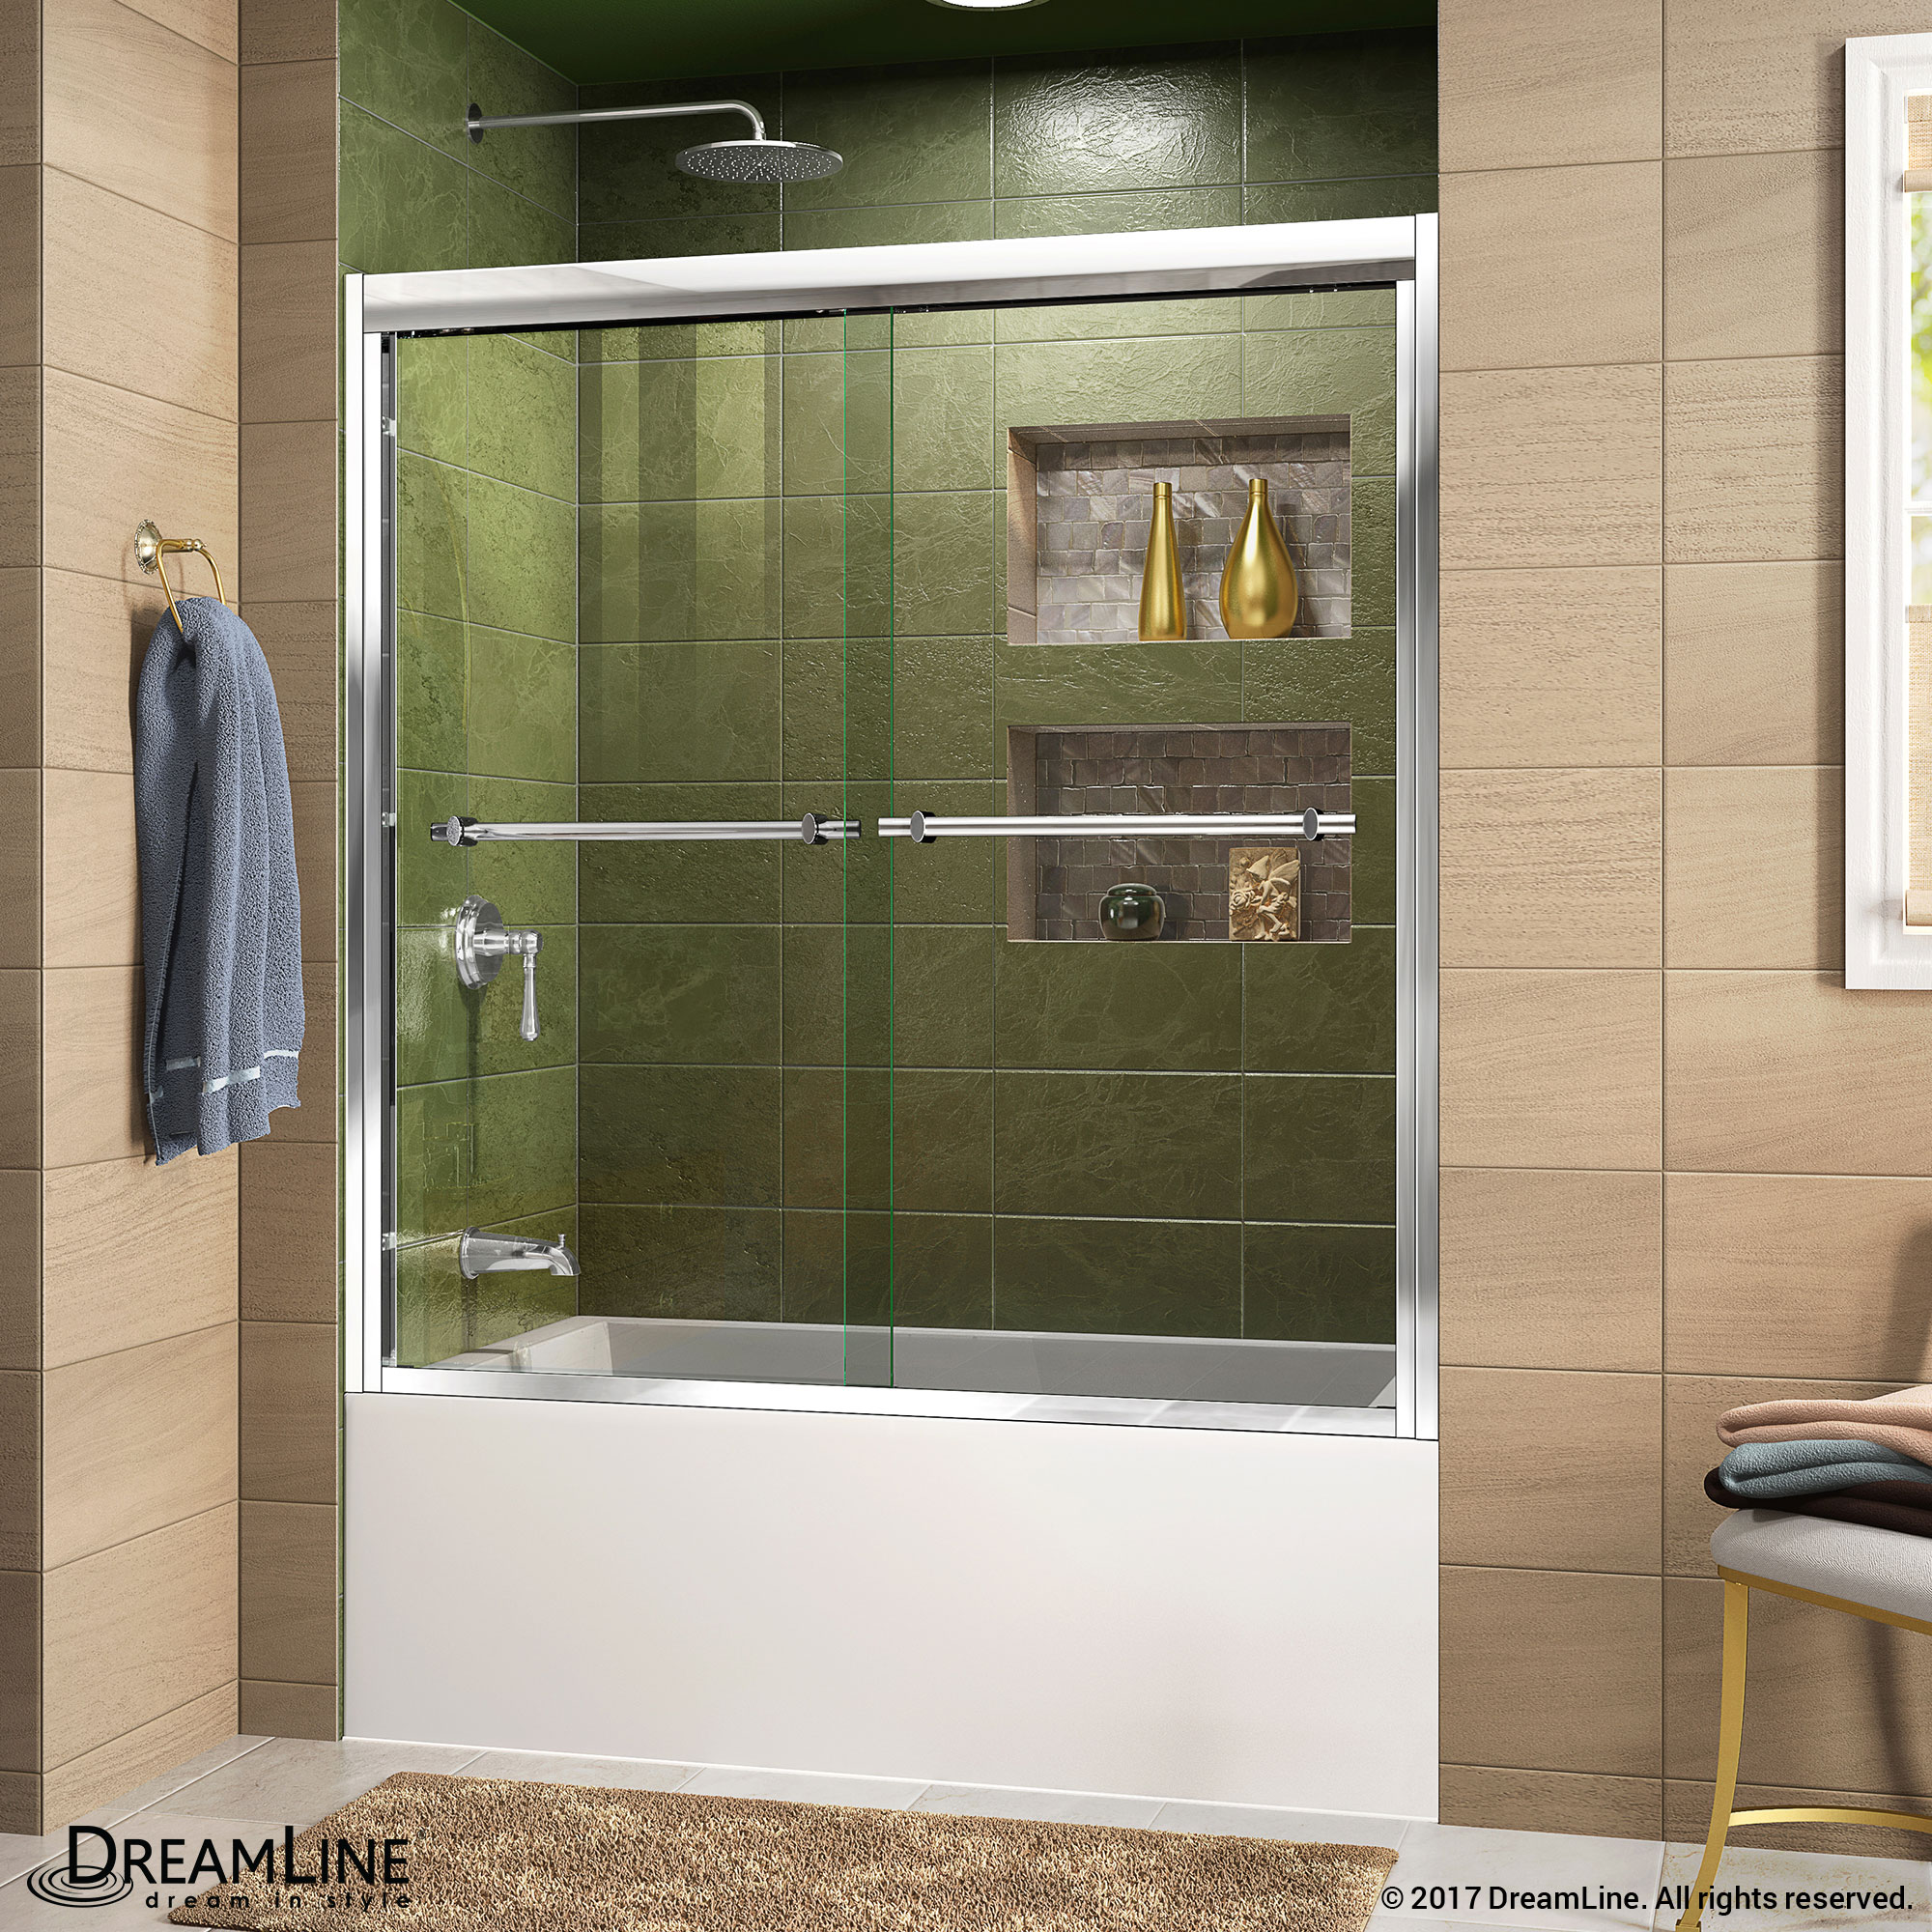 "Duet 56 to 60"" Frameless Bypass Sliding Shower Door, Clear 5/16"" Glass Door, Brushed Nickel"